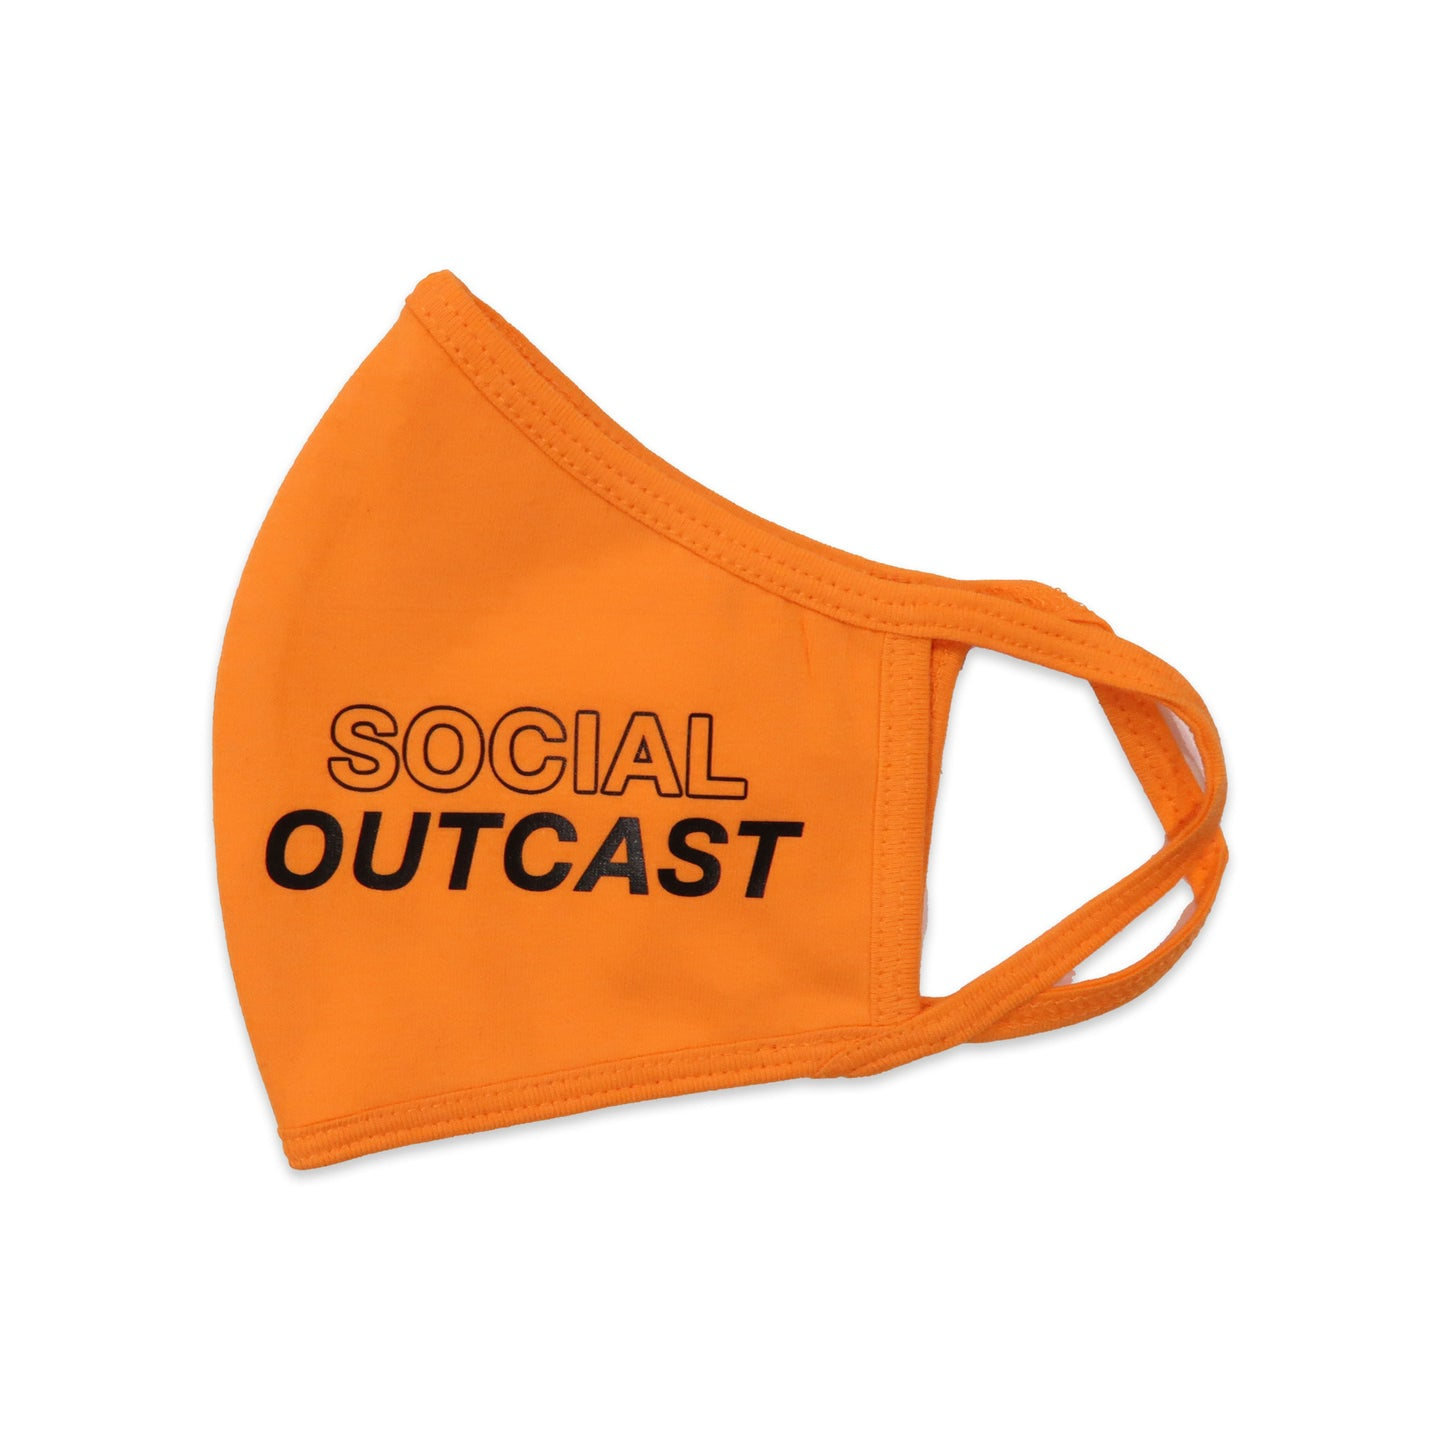 Social Outcast Face Mask in Orange and Black